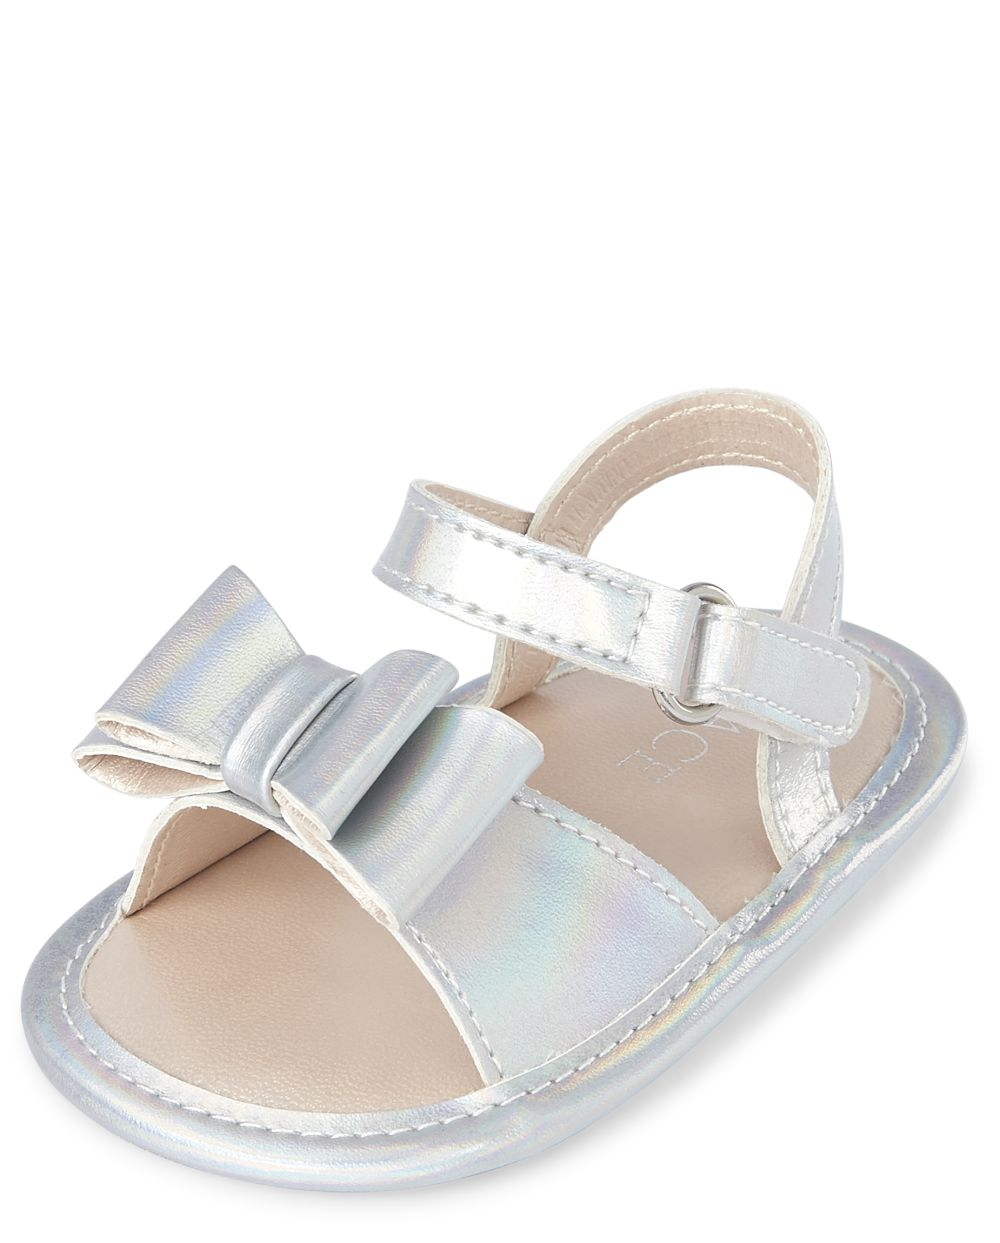 Baby Girls Holographic Bow Sandals